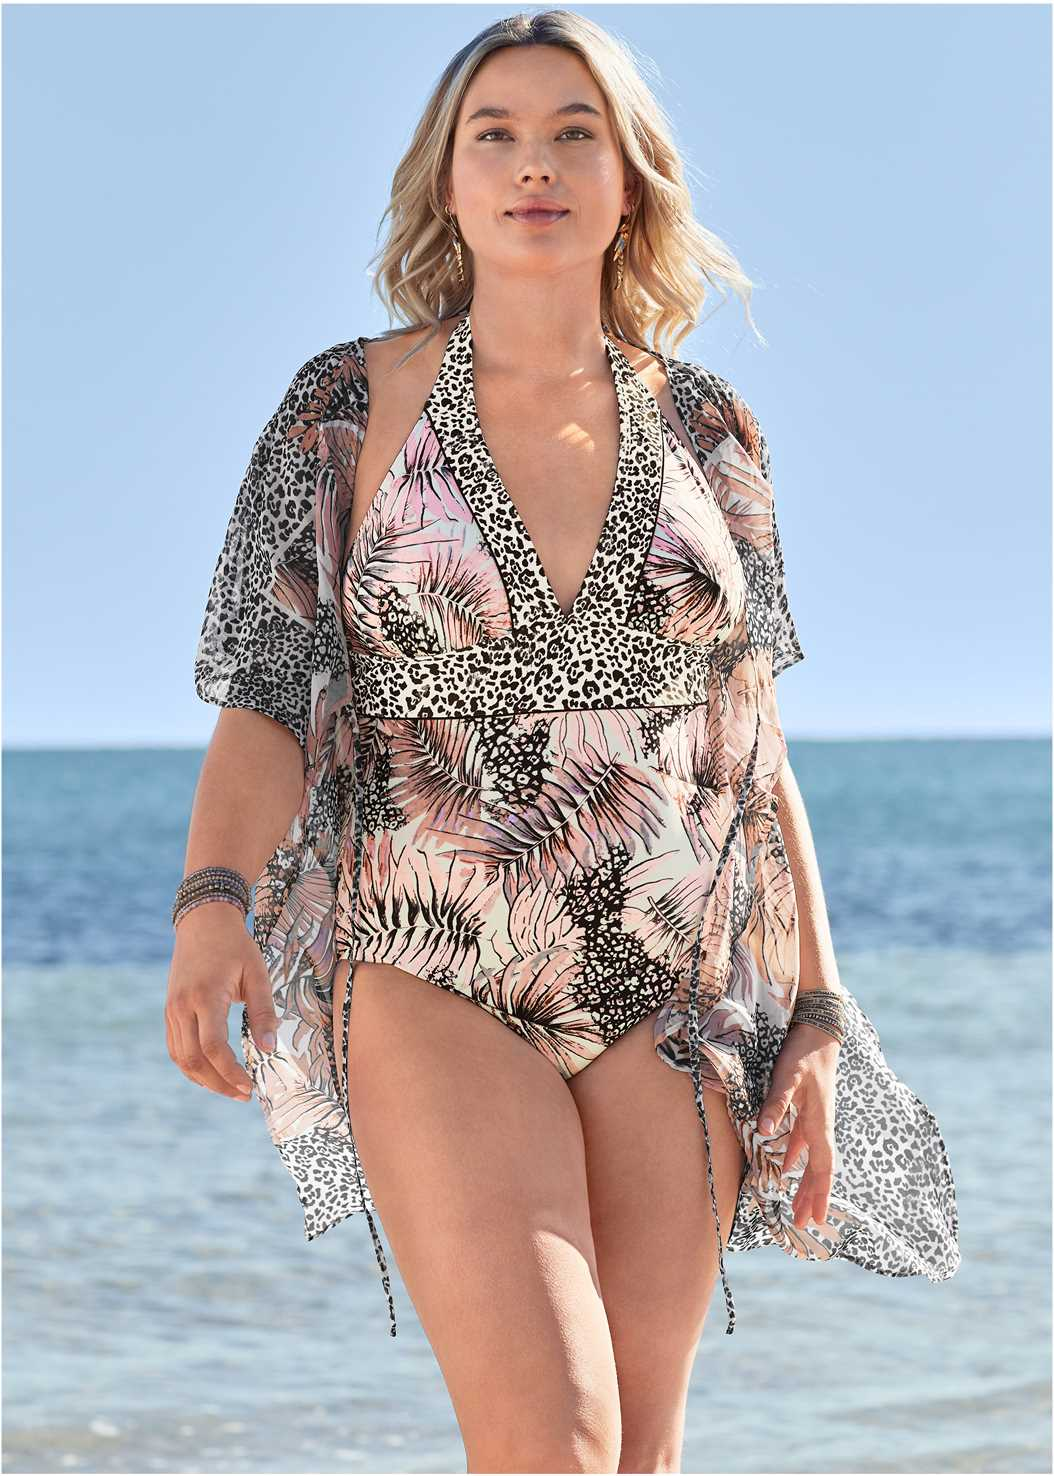 Front Tie Kimono Cover-Up,Bohemian One-Piece,Marilyn Underwire Push Up Halter Top,Full Coverage Mid Rise Hipster Bikini Bottom,Woven Handbag